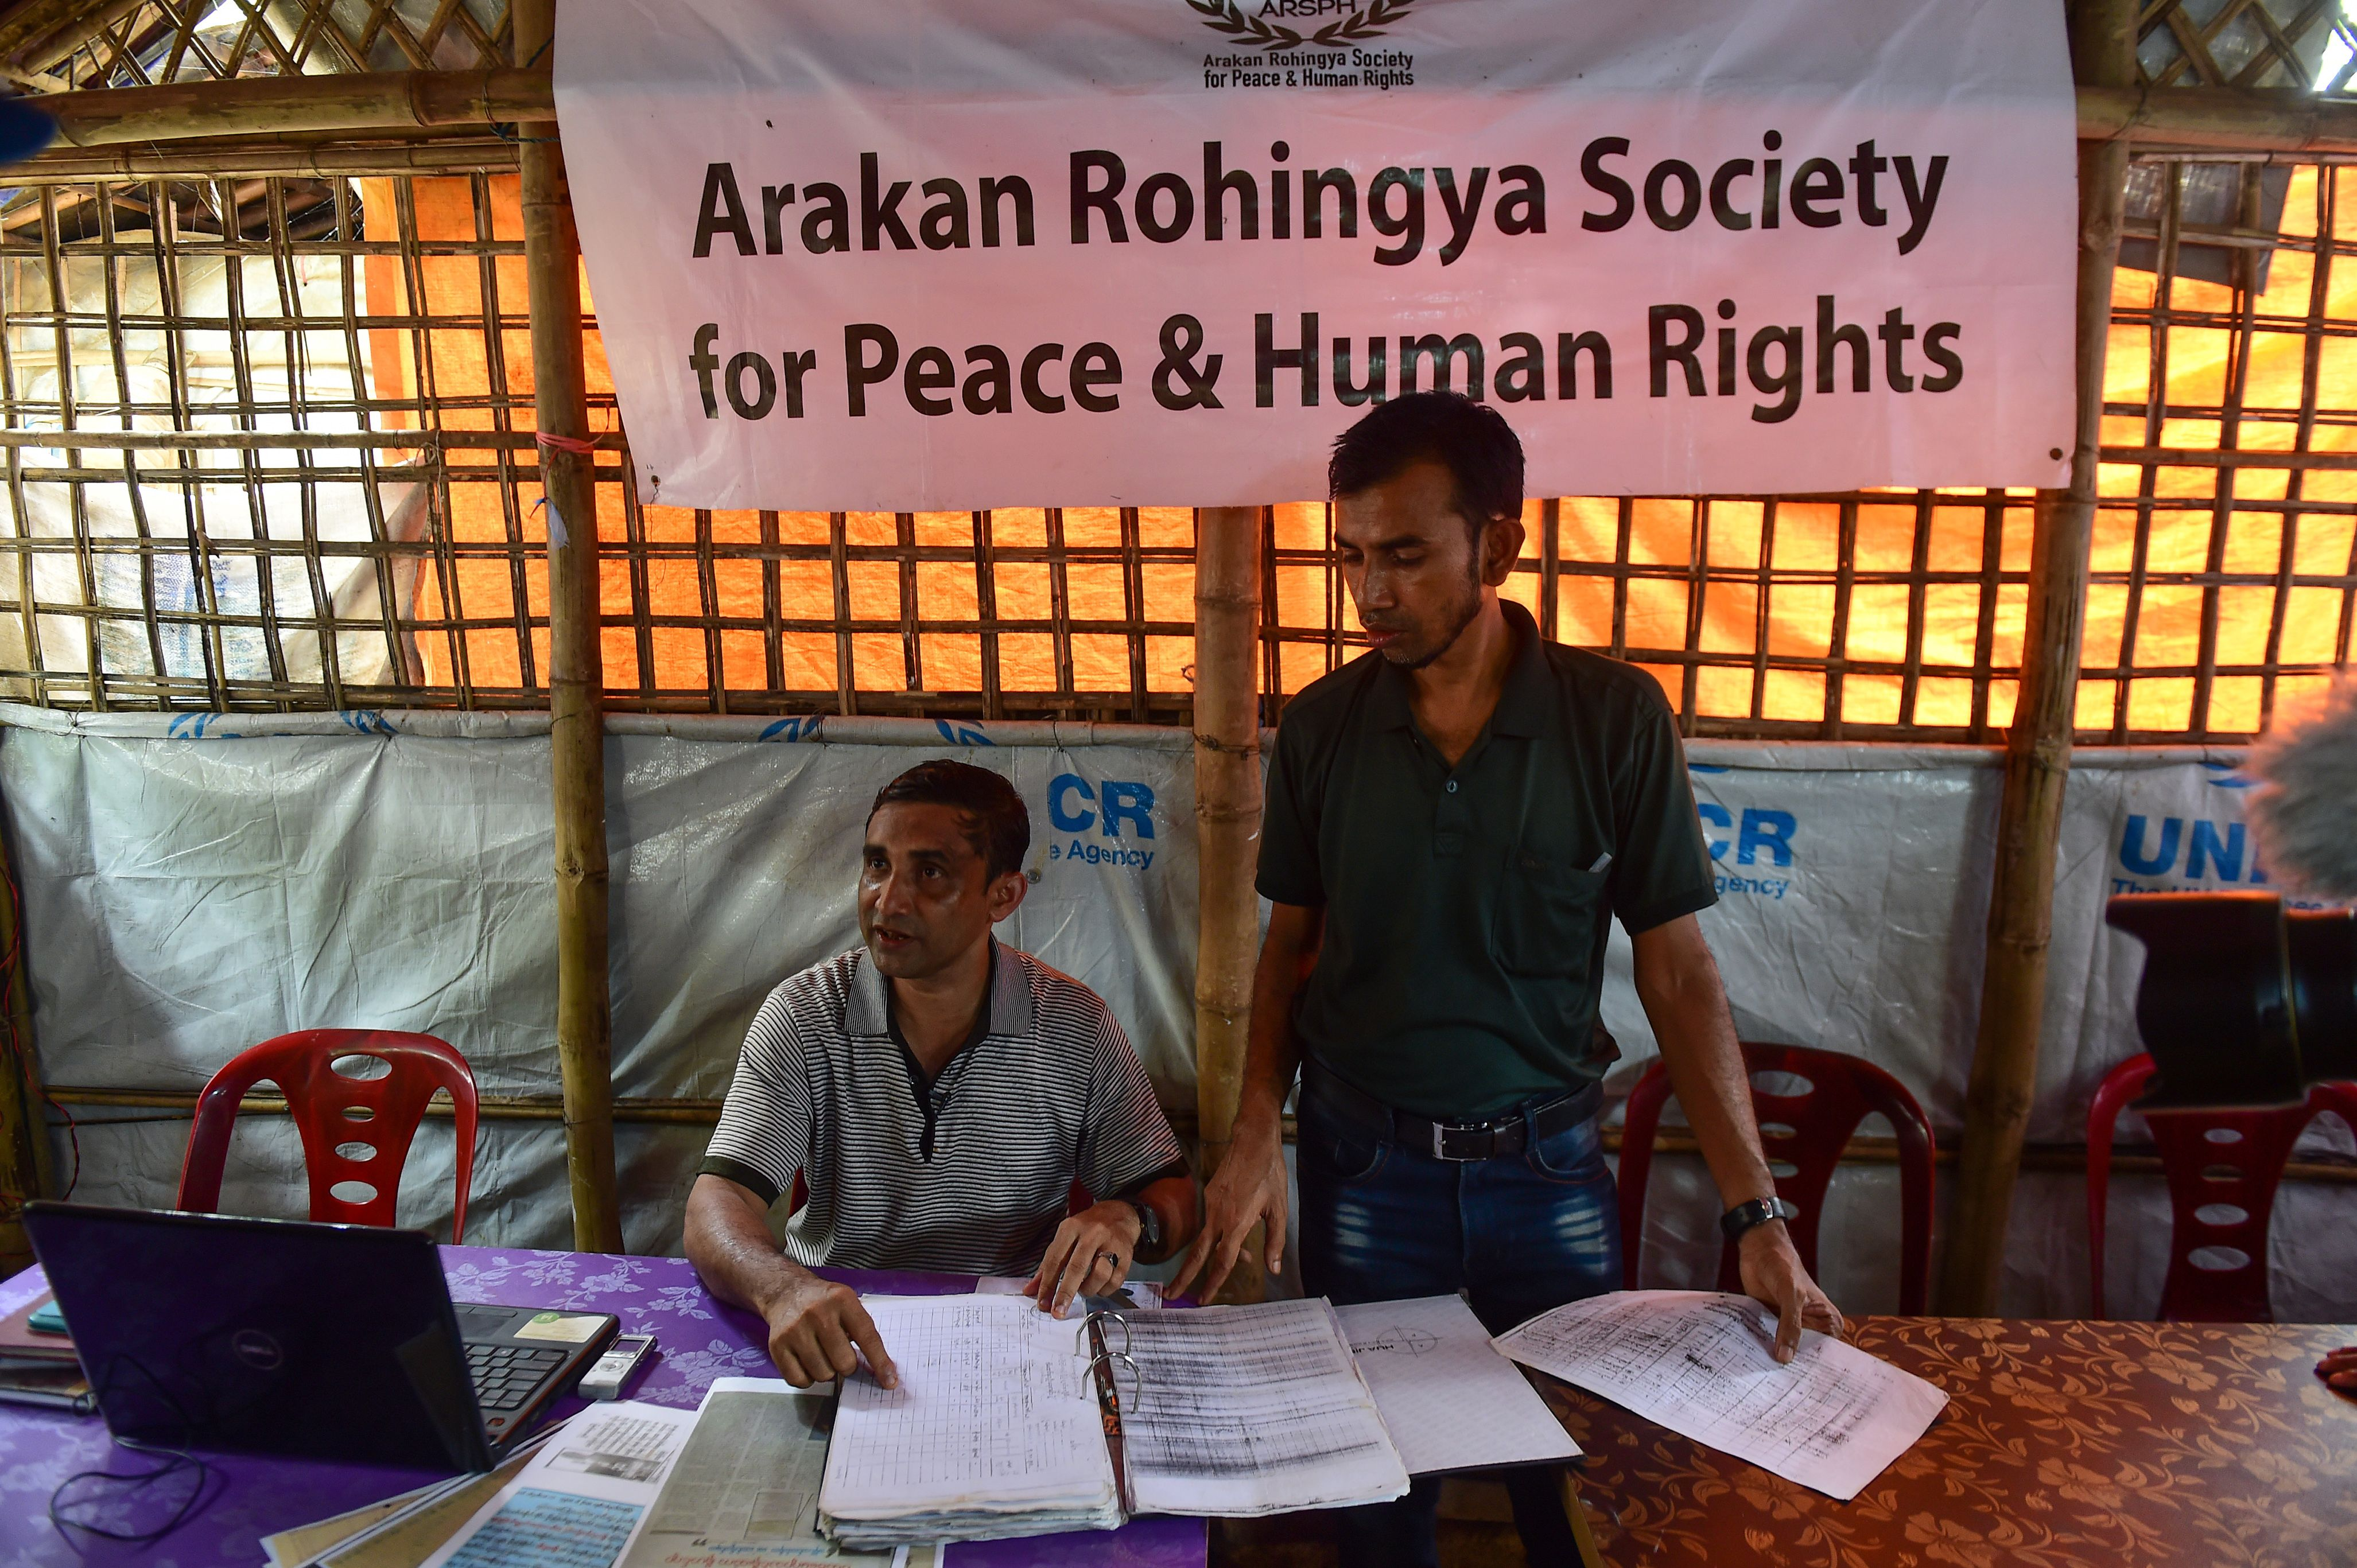 Rohingya activists collect testimony from refugees who suffered alleged abuses by Myanmar soldiers, at the Kutupalong refugee camp in Ukhia, Bangladesh on July 19, 2018.